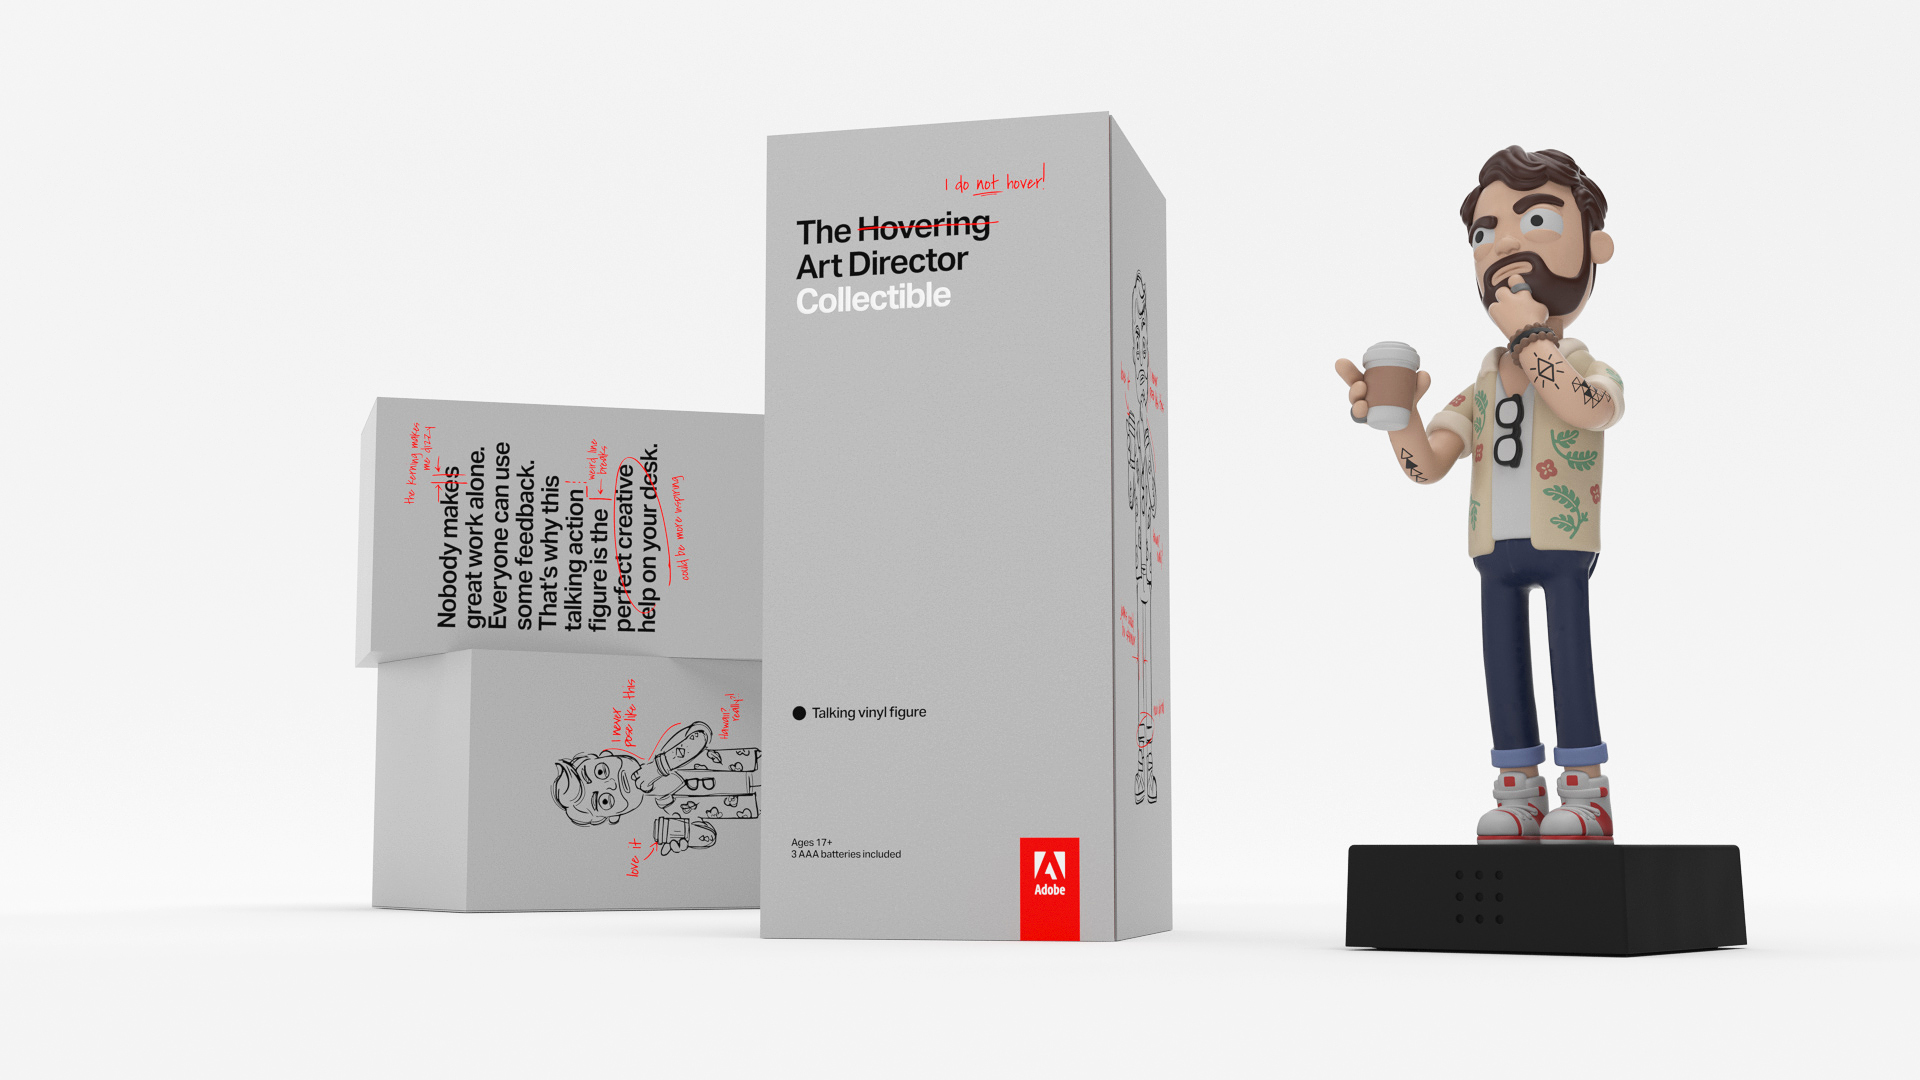 1MJP-–-Adobe-Stock-–-The-Hovering-Art-Director-Action-Figure